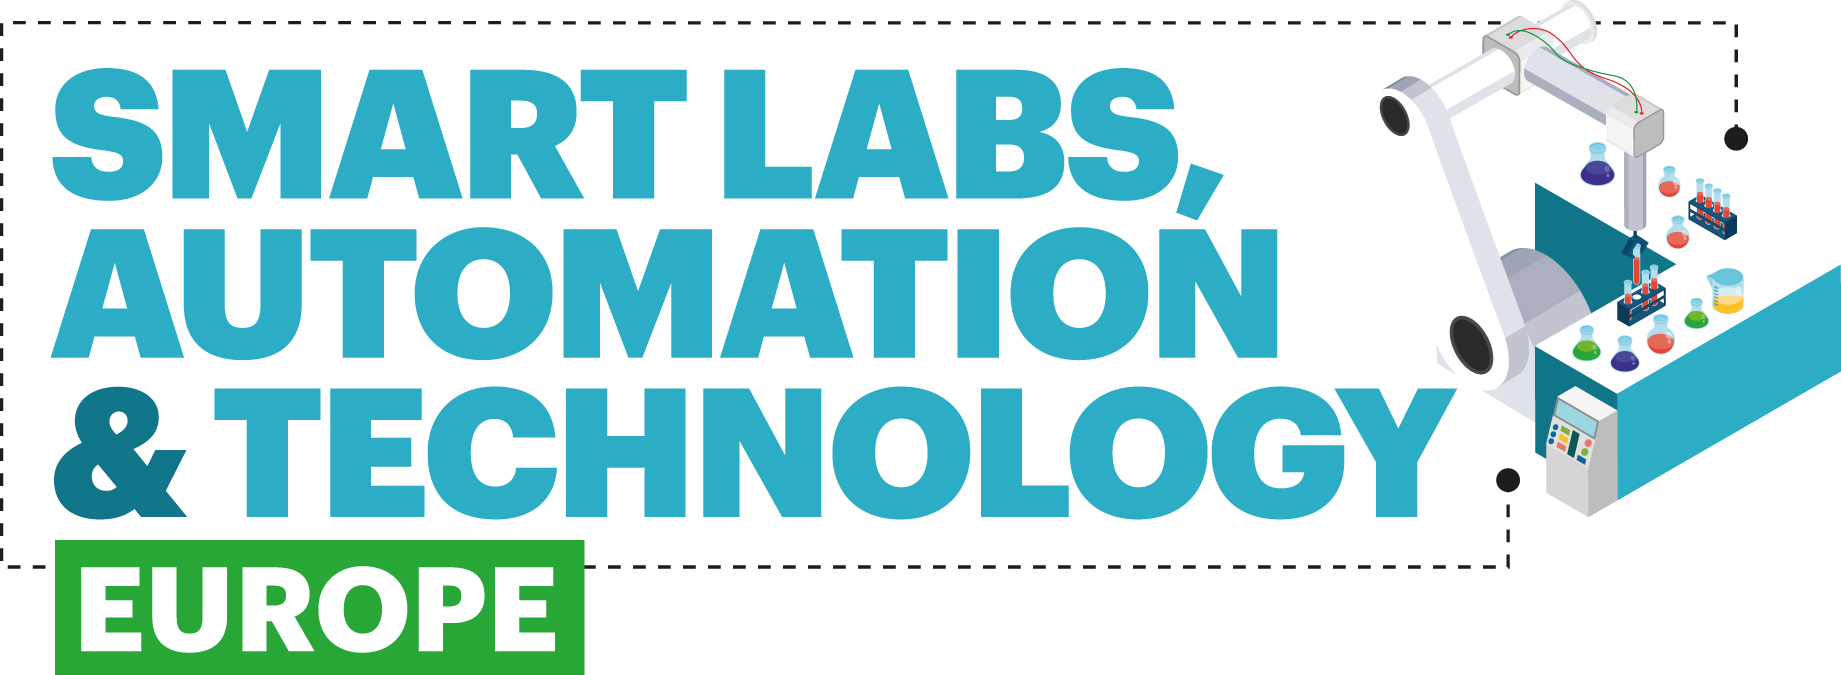 Smart Labs, Automation & Technology Europe